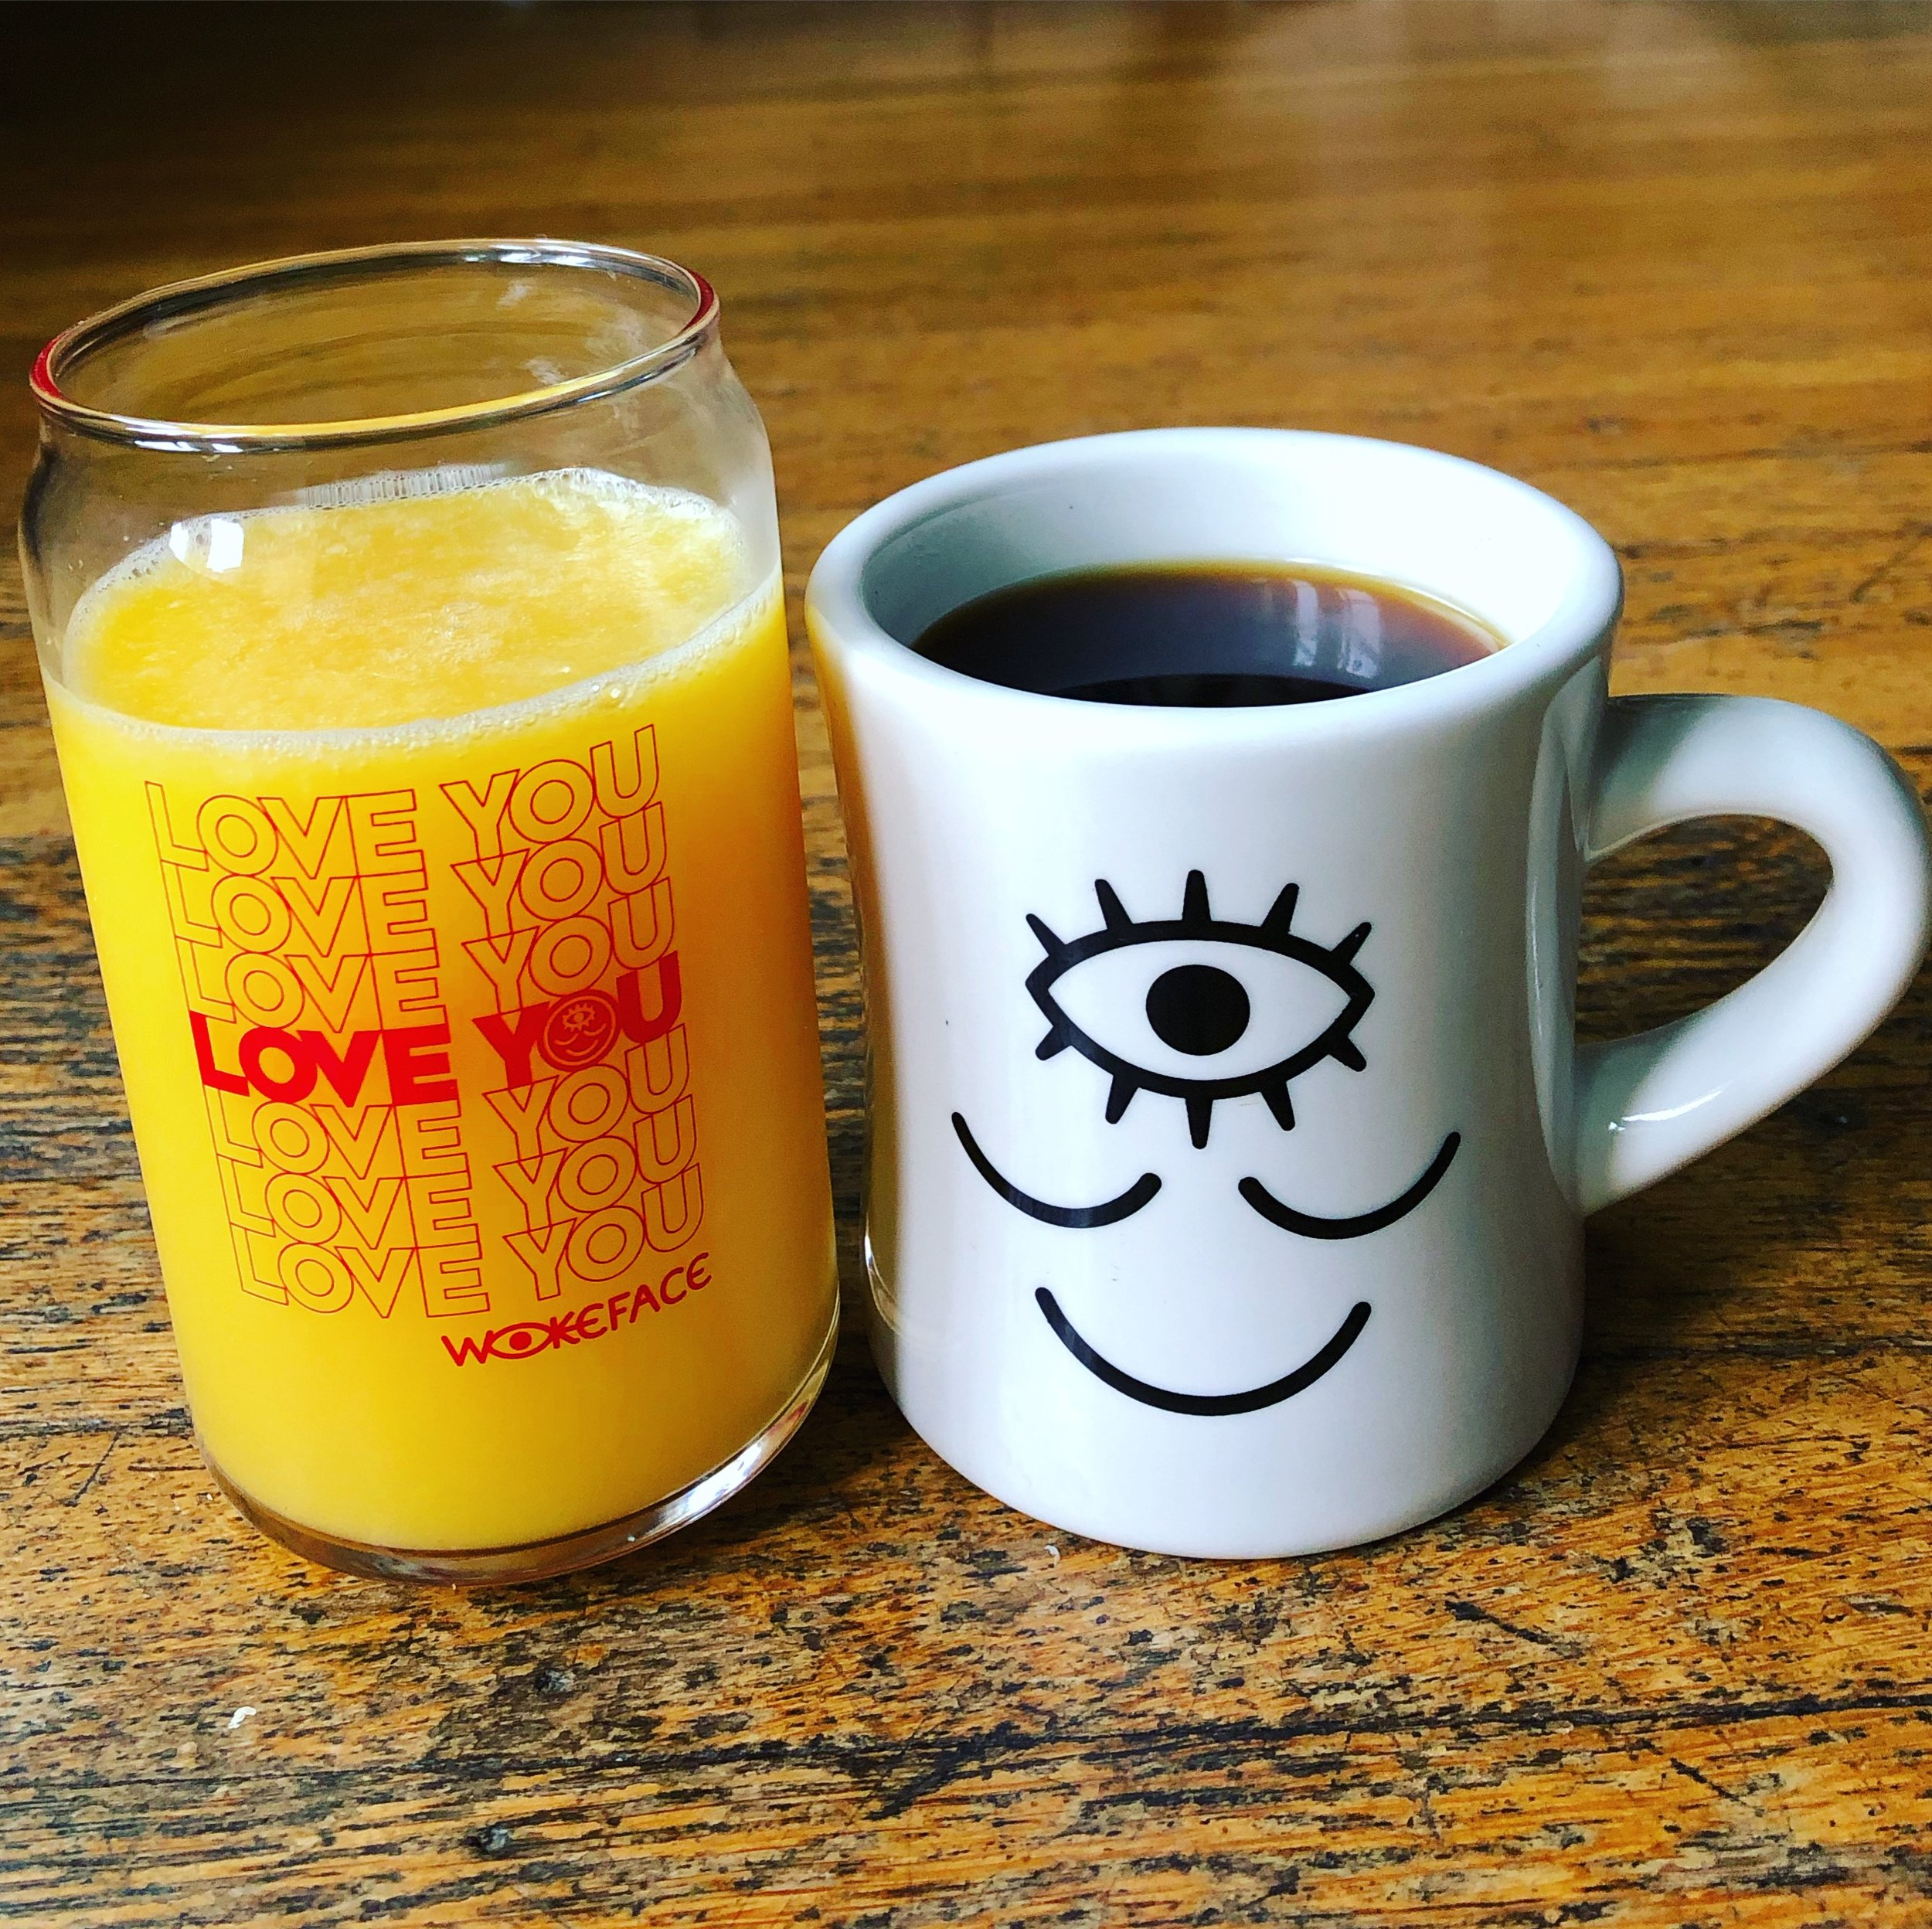 Wokeface Love You Can Glass  &  Diner Mug